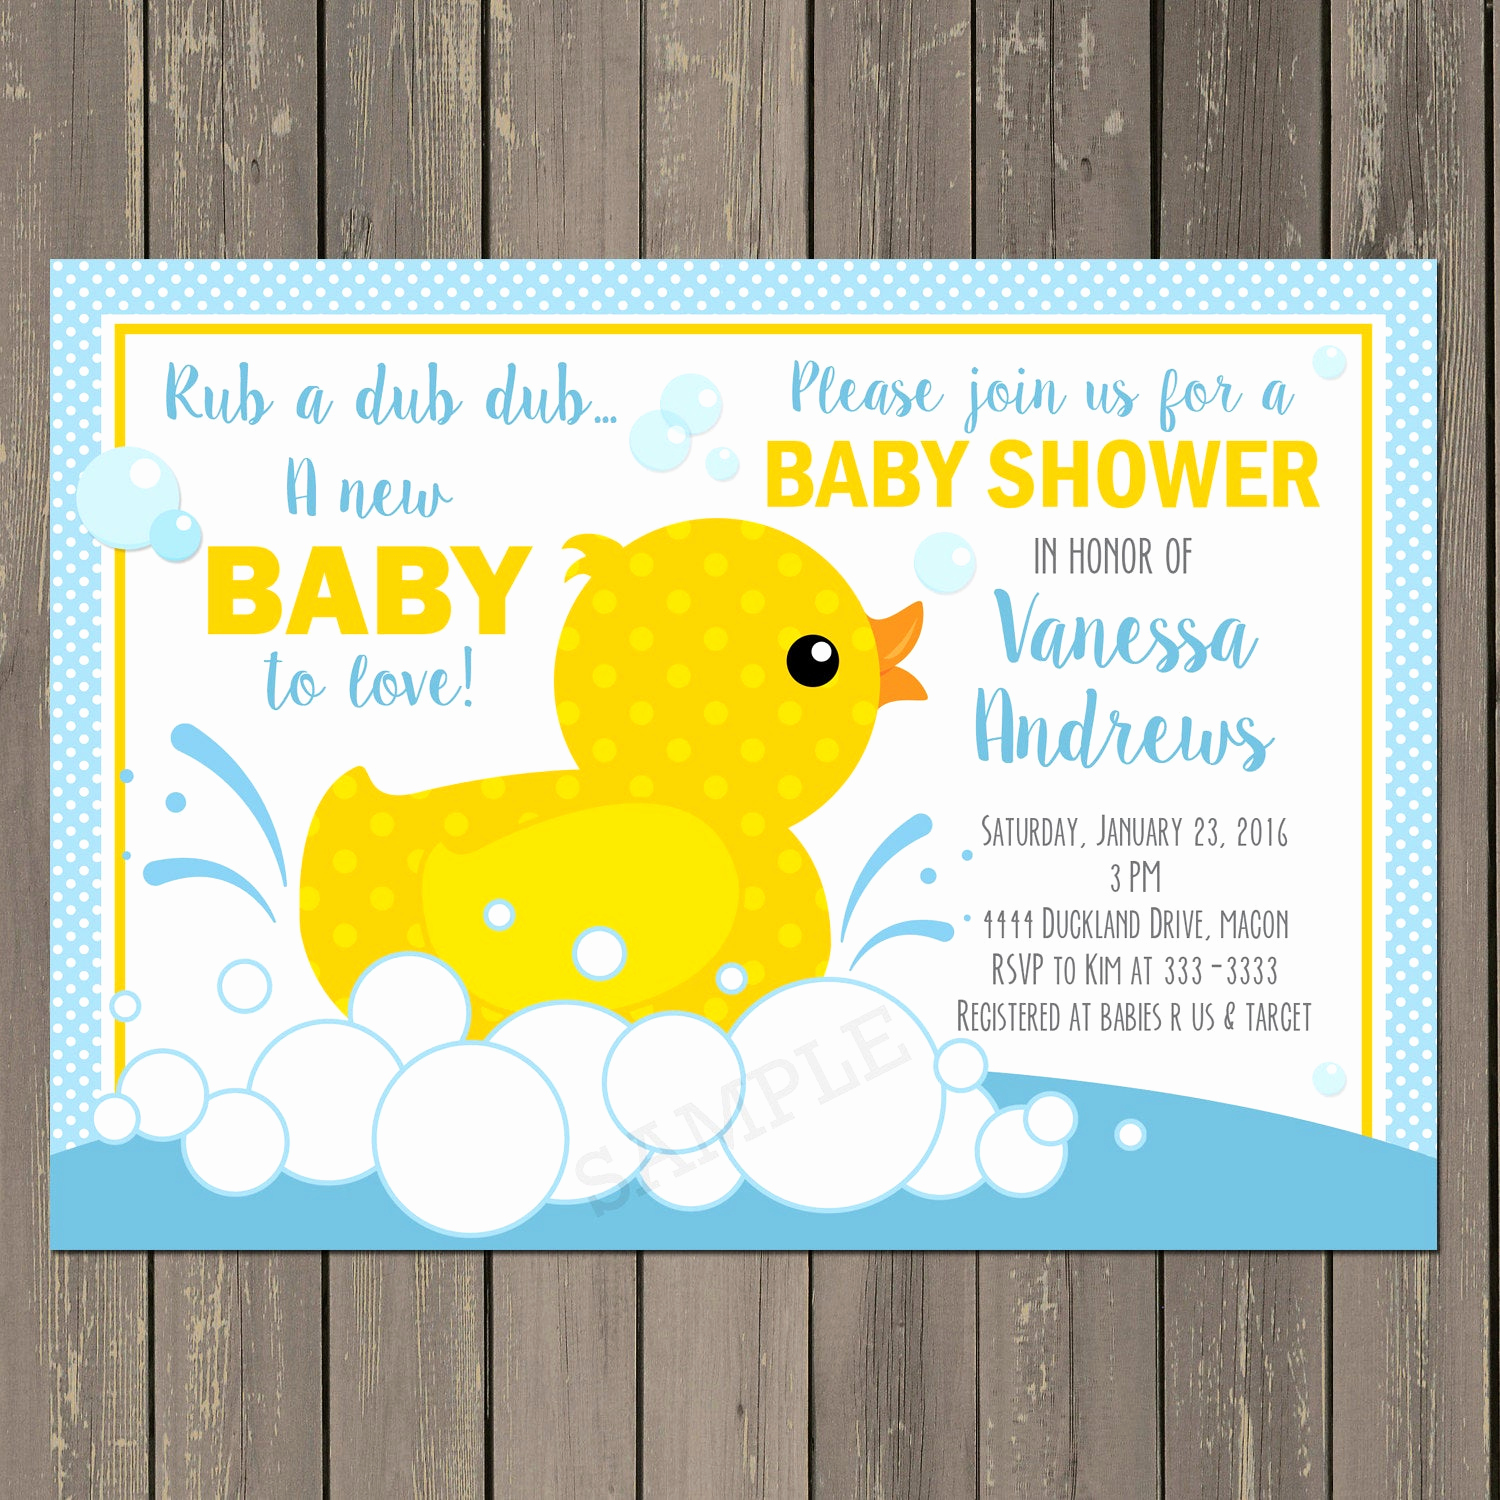 Rubber Ducky Baby Shower Invitation New Rubber Duck Baby Shower Invitation Rubber Ducky Baby Shower